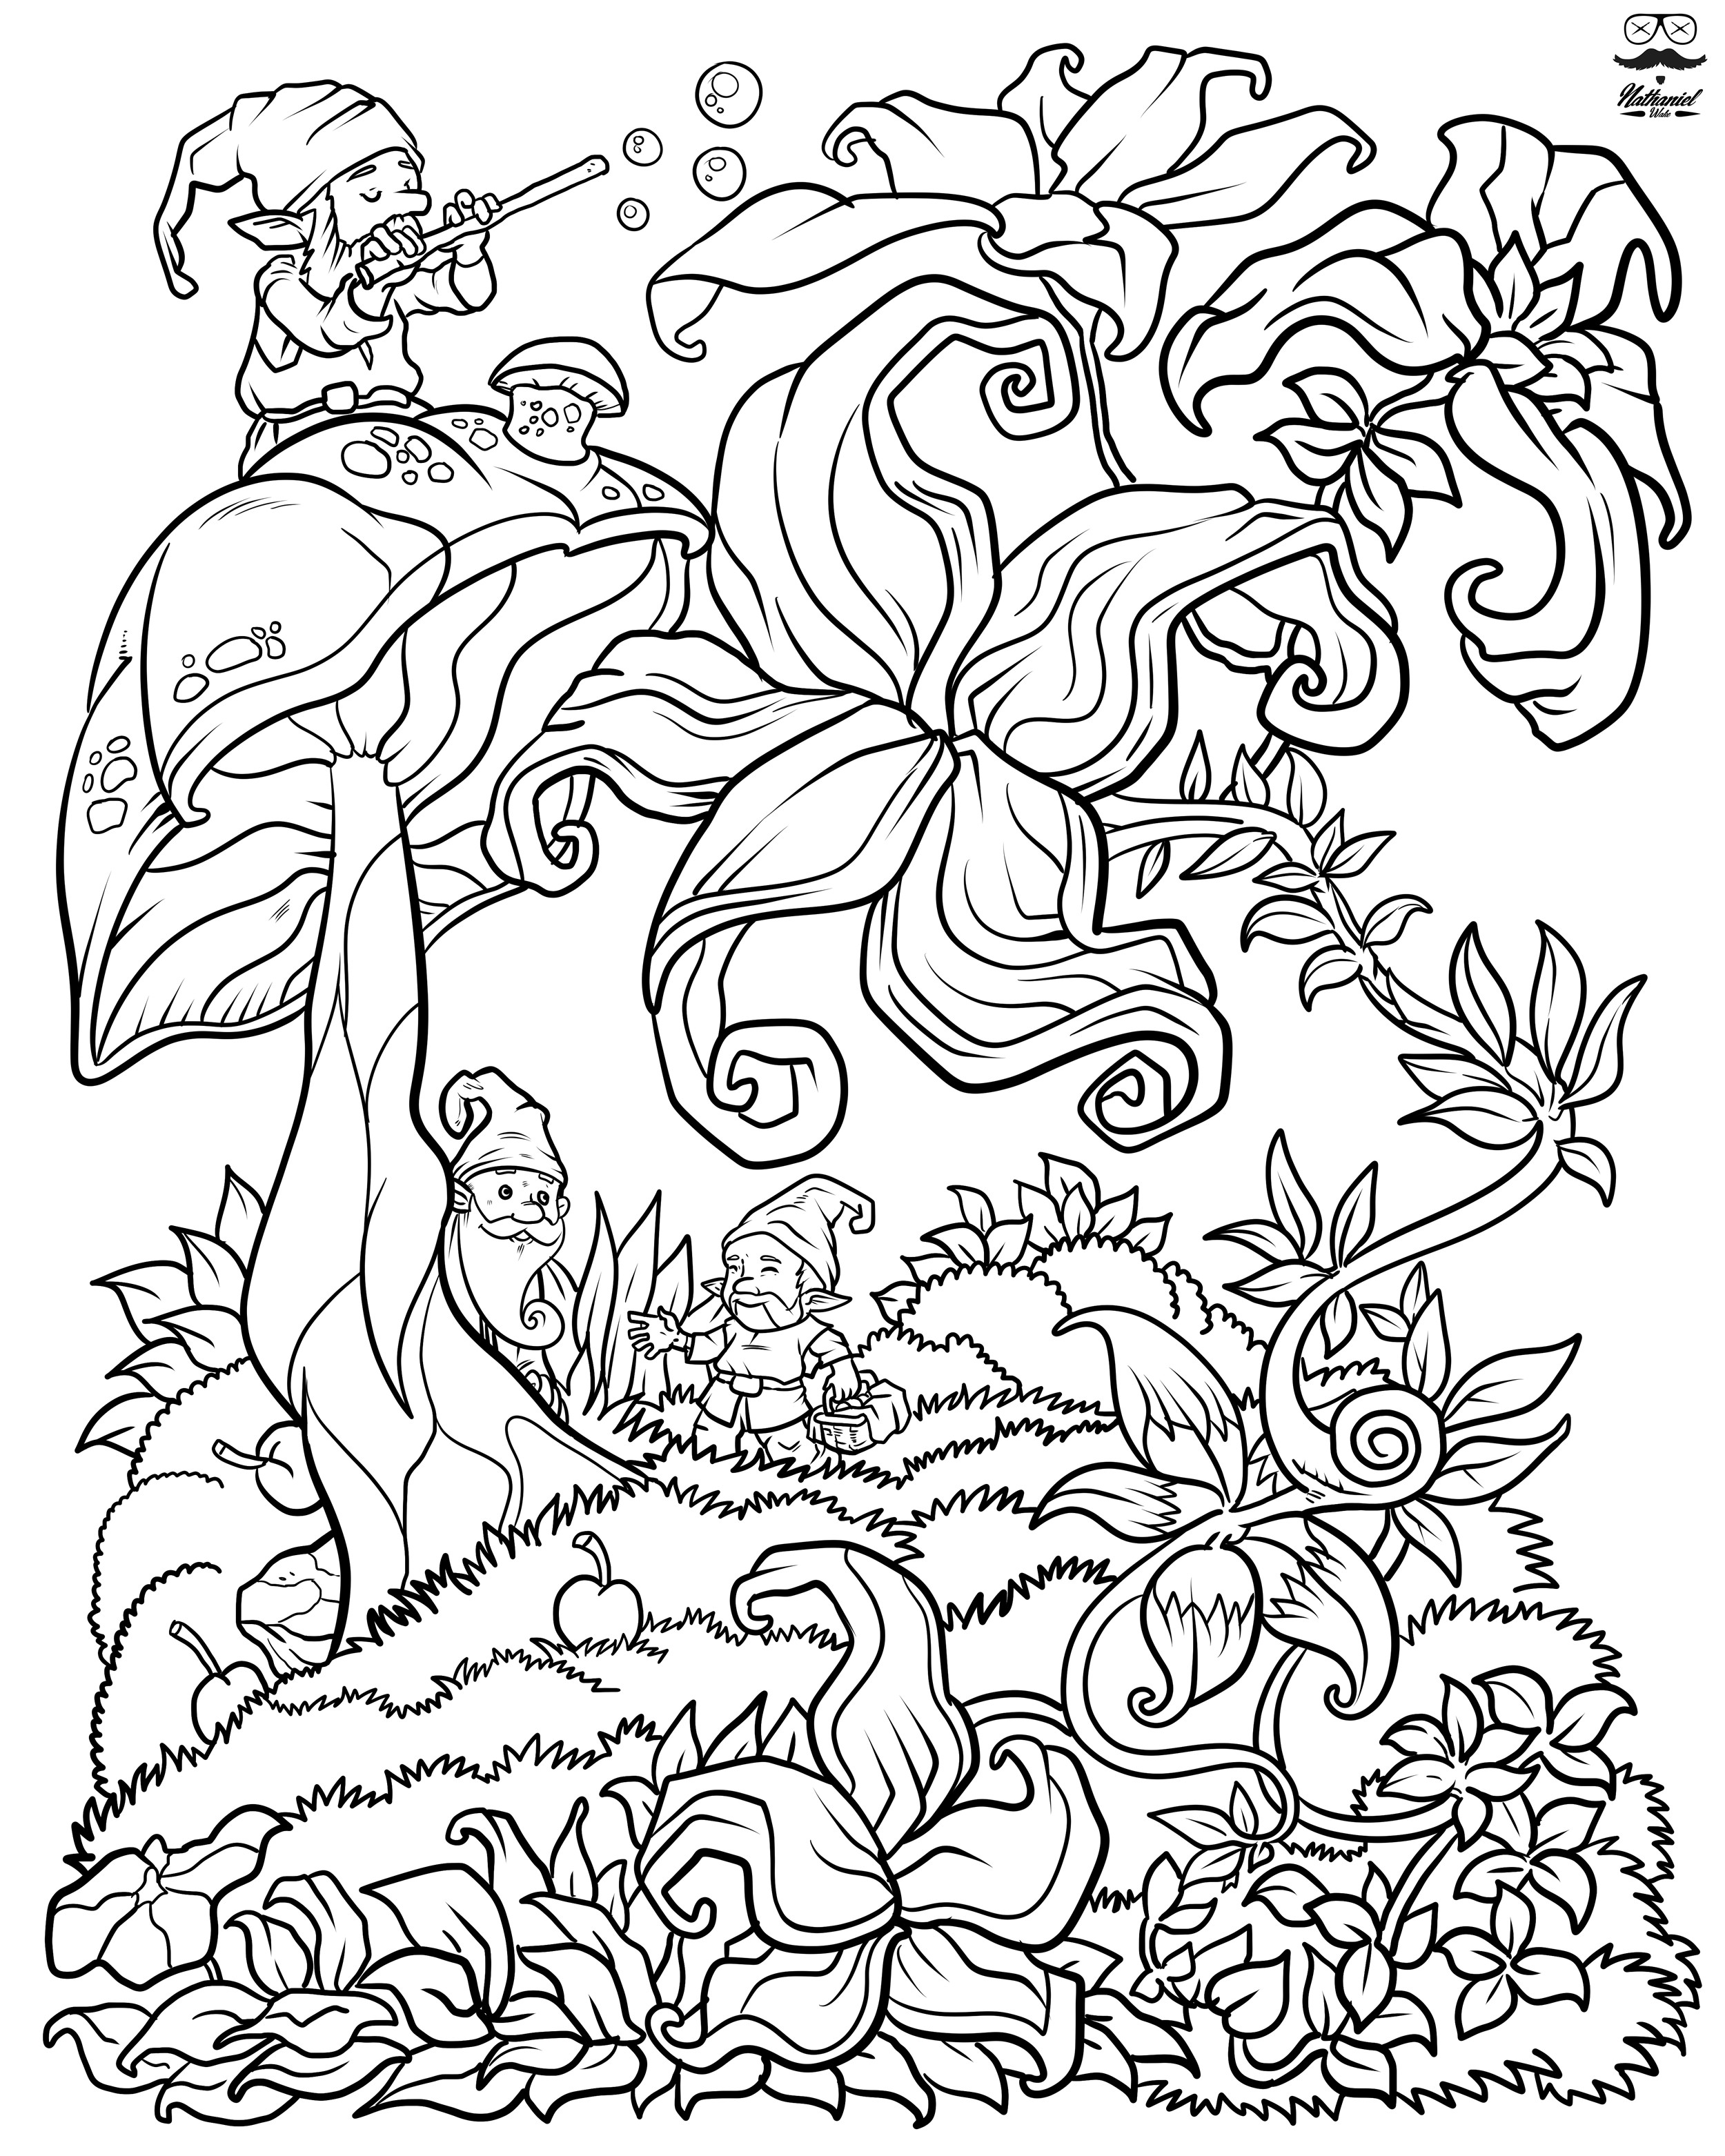 Best ideas about Adult Coloring Books . Save or Pin Floral Fantasy Digital Version Adult Coloring Book Now.